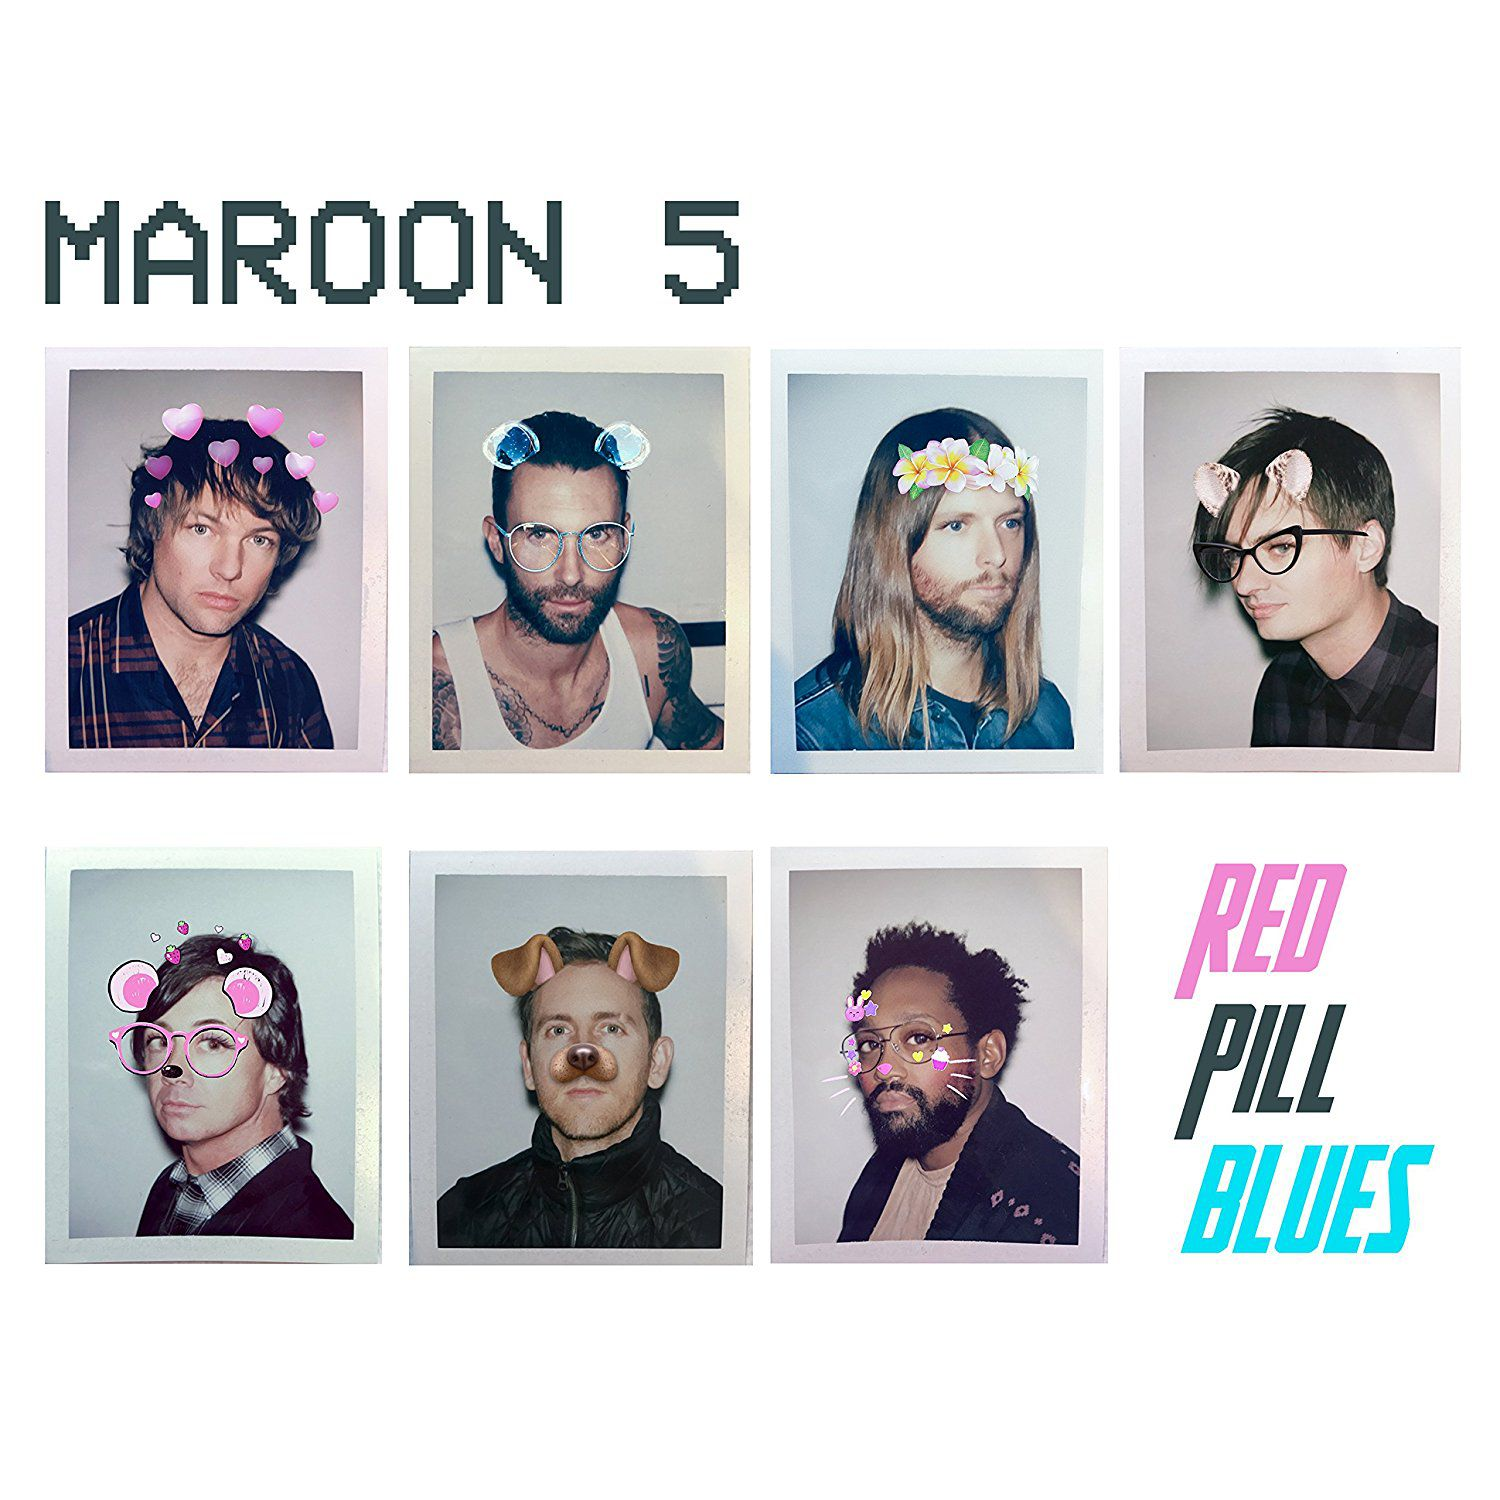 Maroon 5, Red Pill Blues